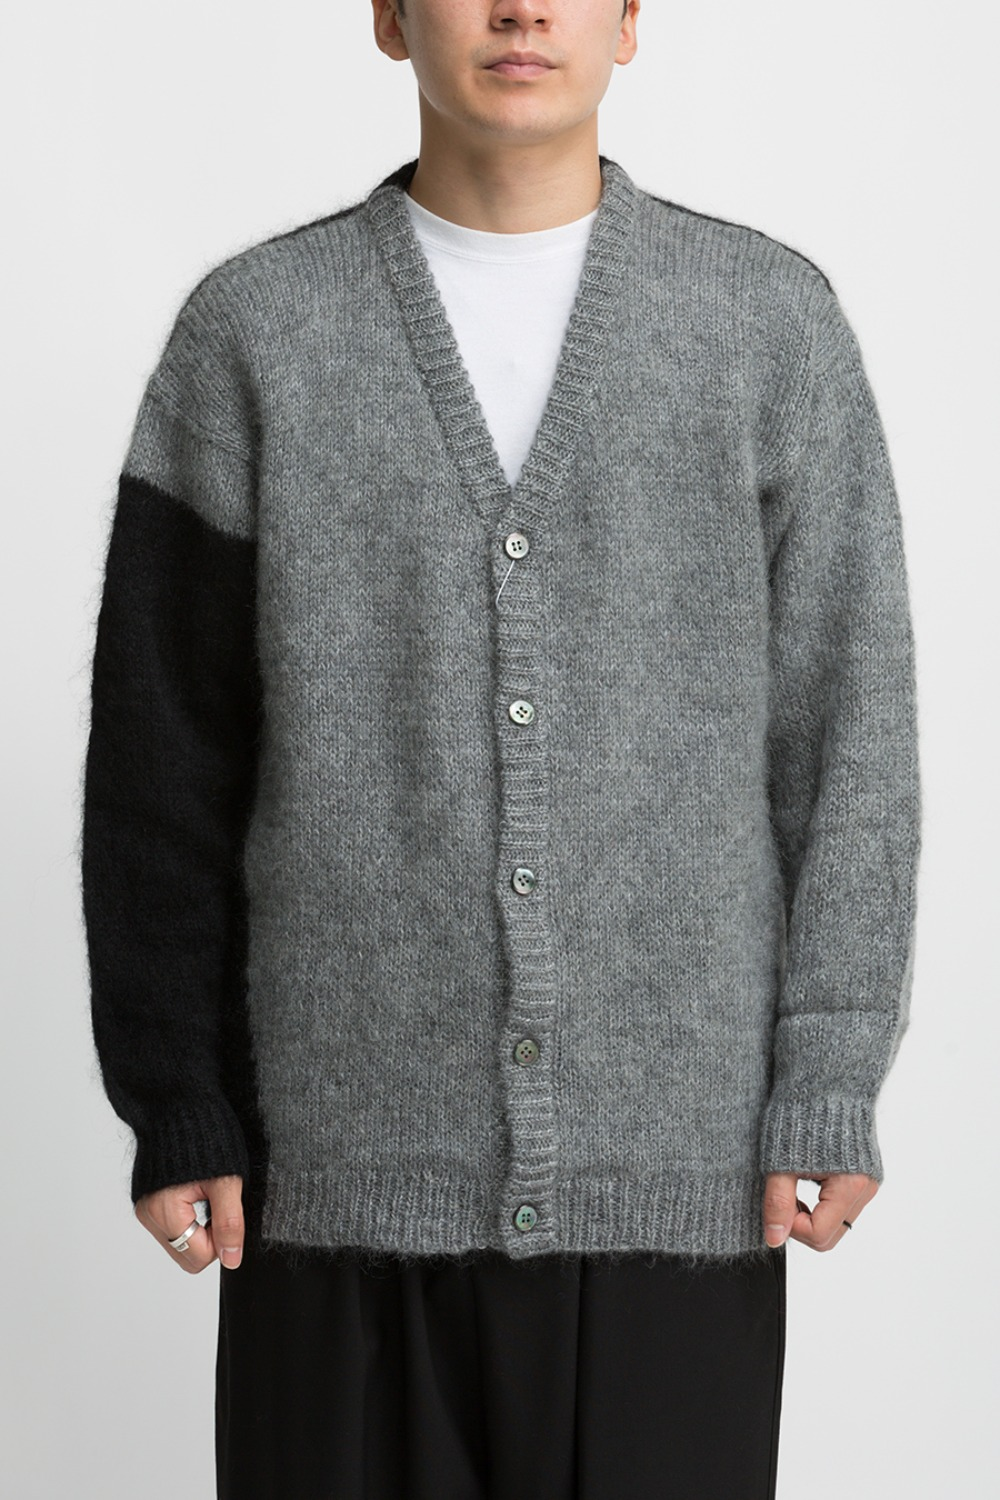 HAND KNITTED MOHAIR CARDIGAN BLACK / GREY